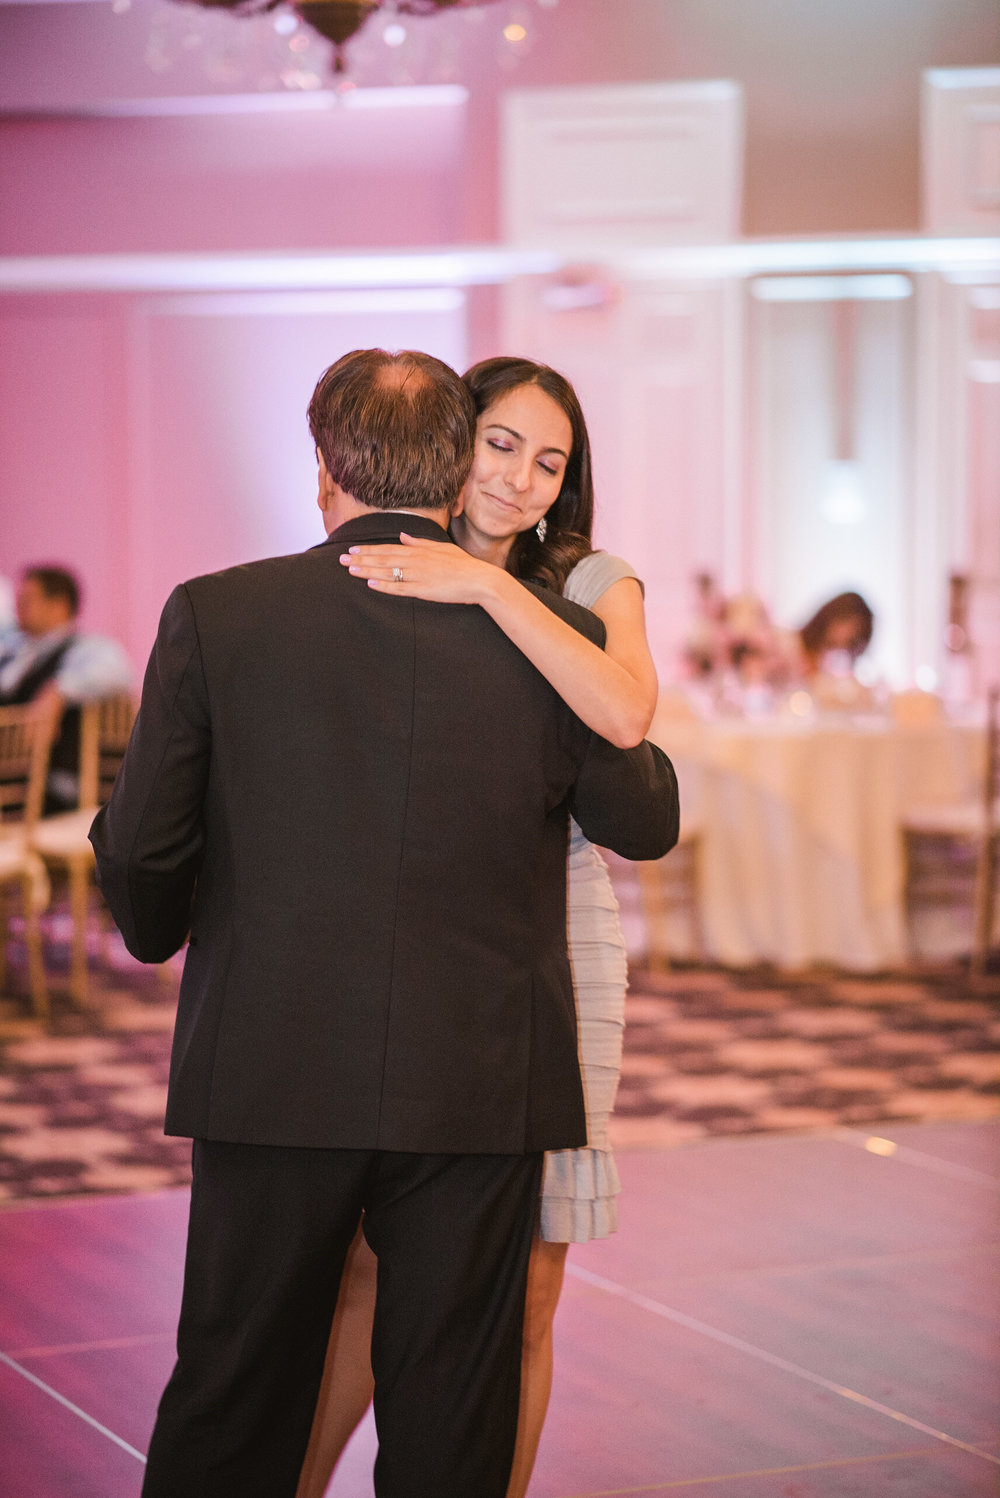 Groom dancing with daughter